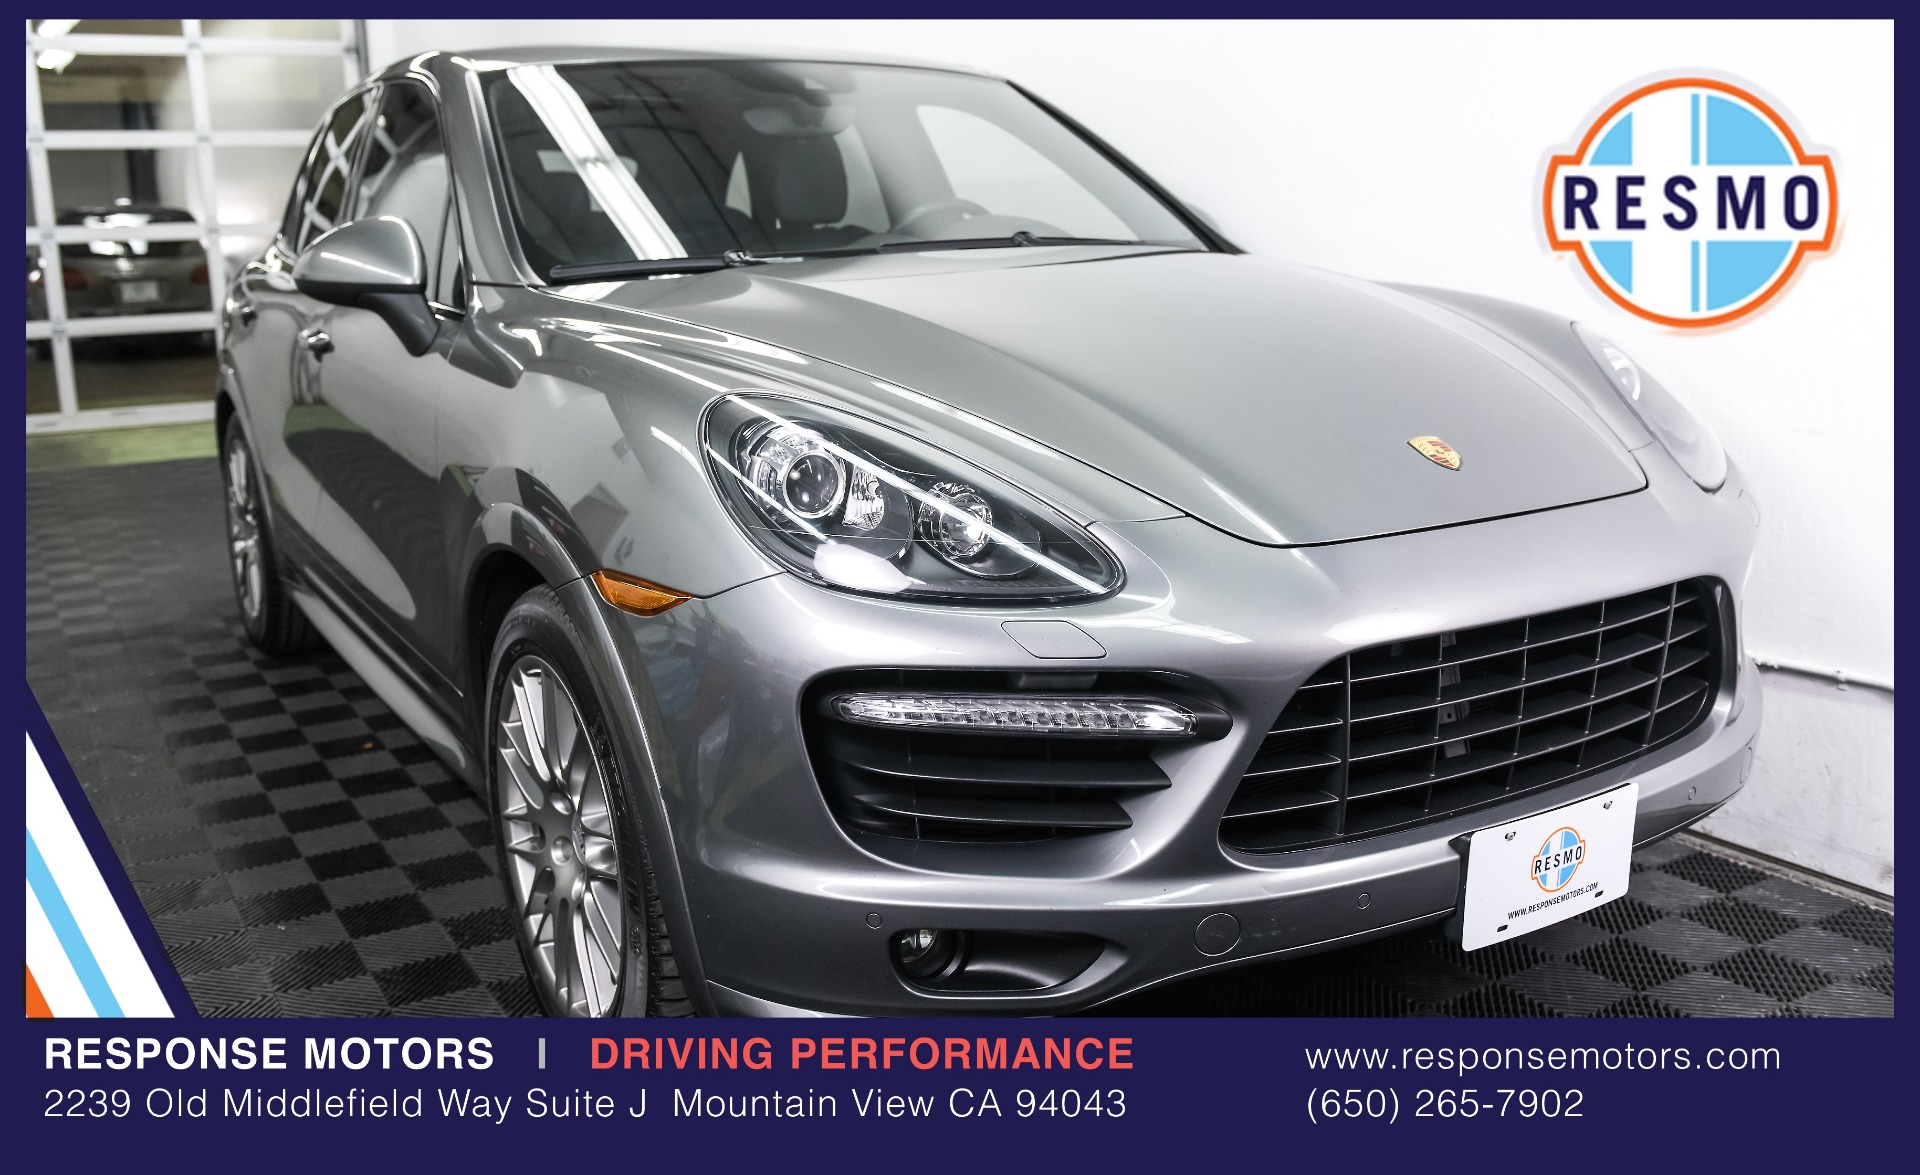 Used 2014 Porsche Cayenne GTS Used 2014 Porsche Cayenne GTS for sale $42,499 at Response Motors in Mountain View CA 2